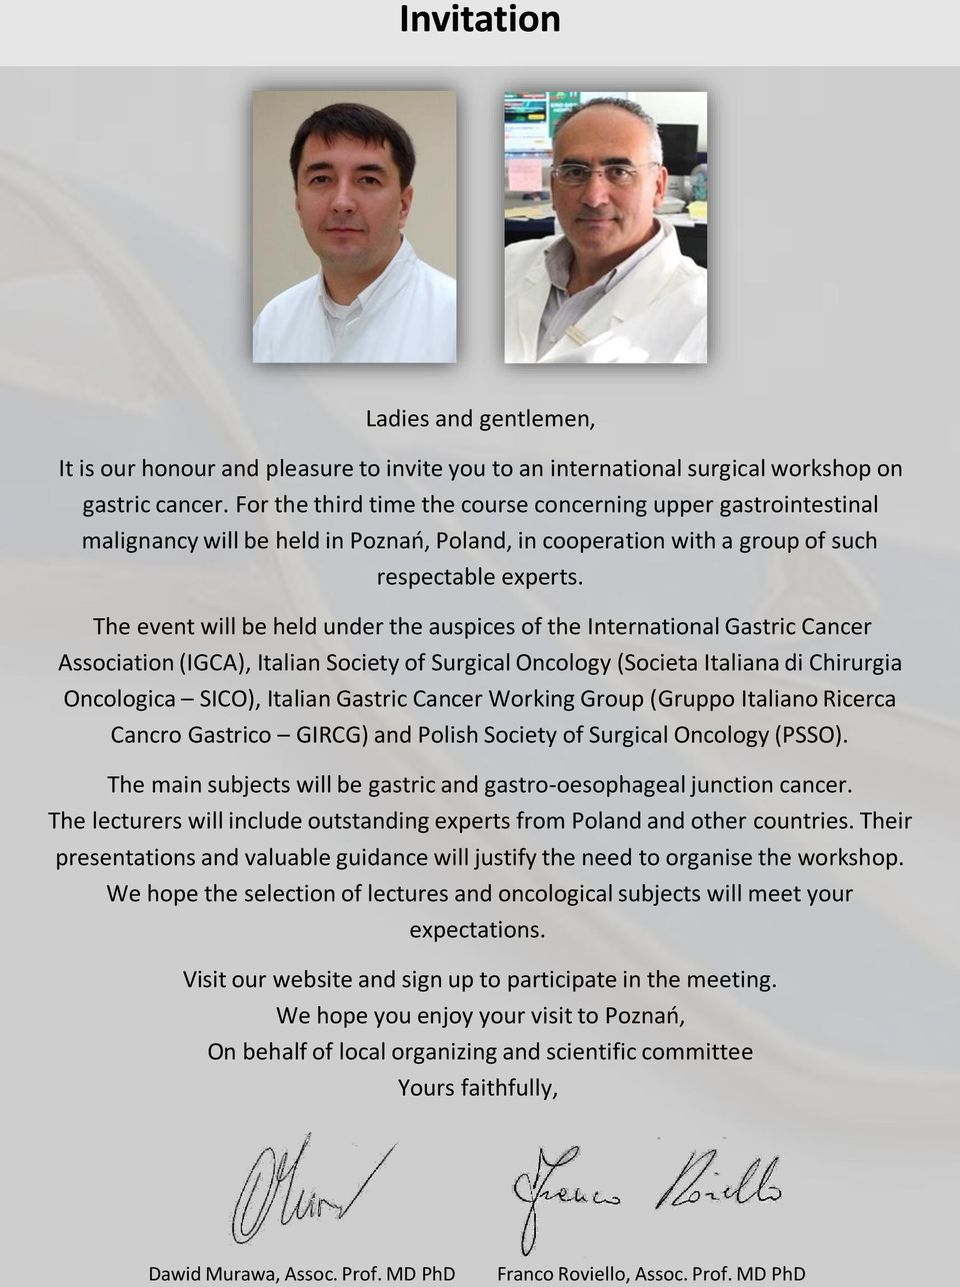 The event will be held under the auspices of the International Gastric Cancer Association (IGCA), Italian Society of Surgical Oncology (Societa Italiana di Chirurgia Oncologica SICO), Italian Gastric